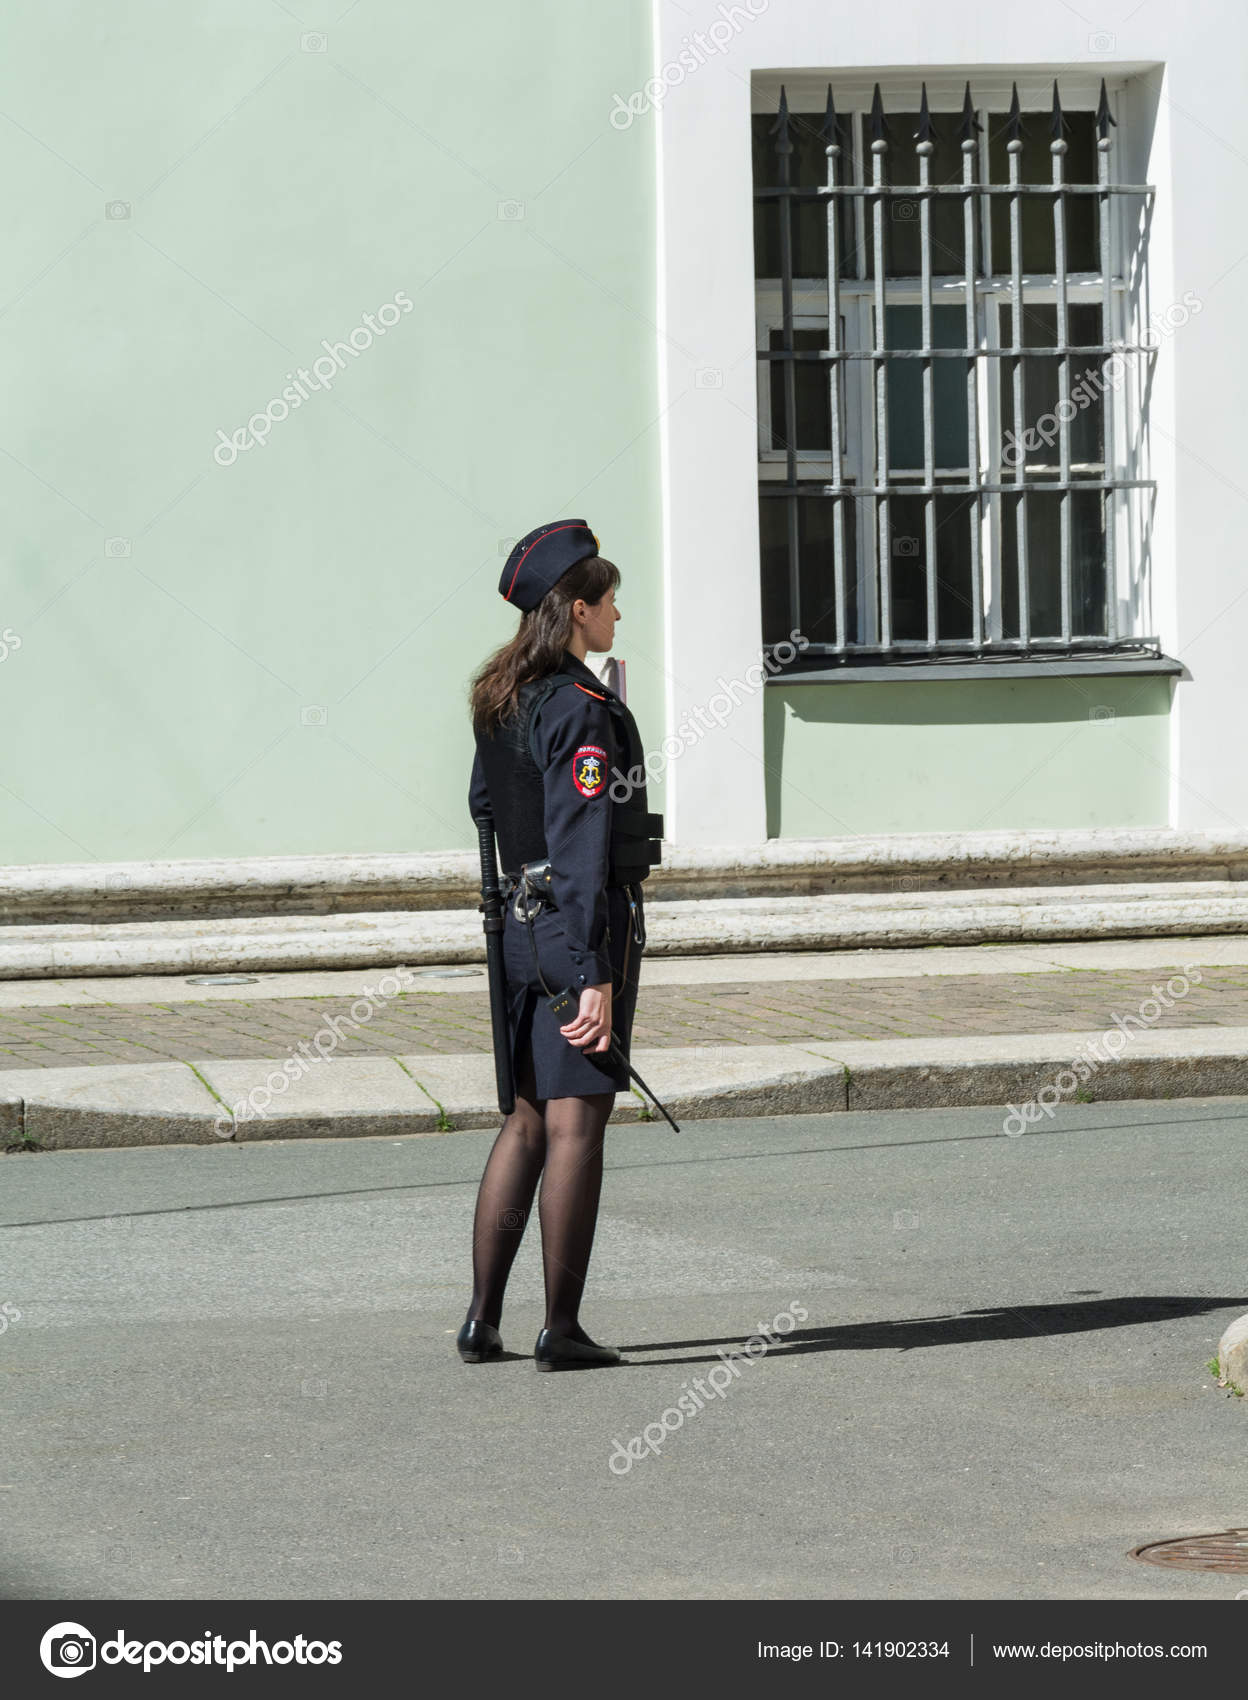 Russian girl police outfit all